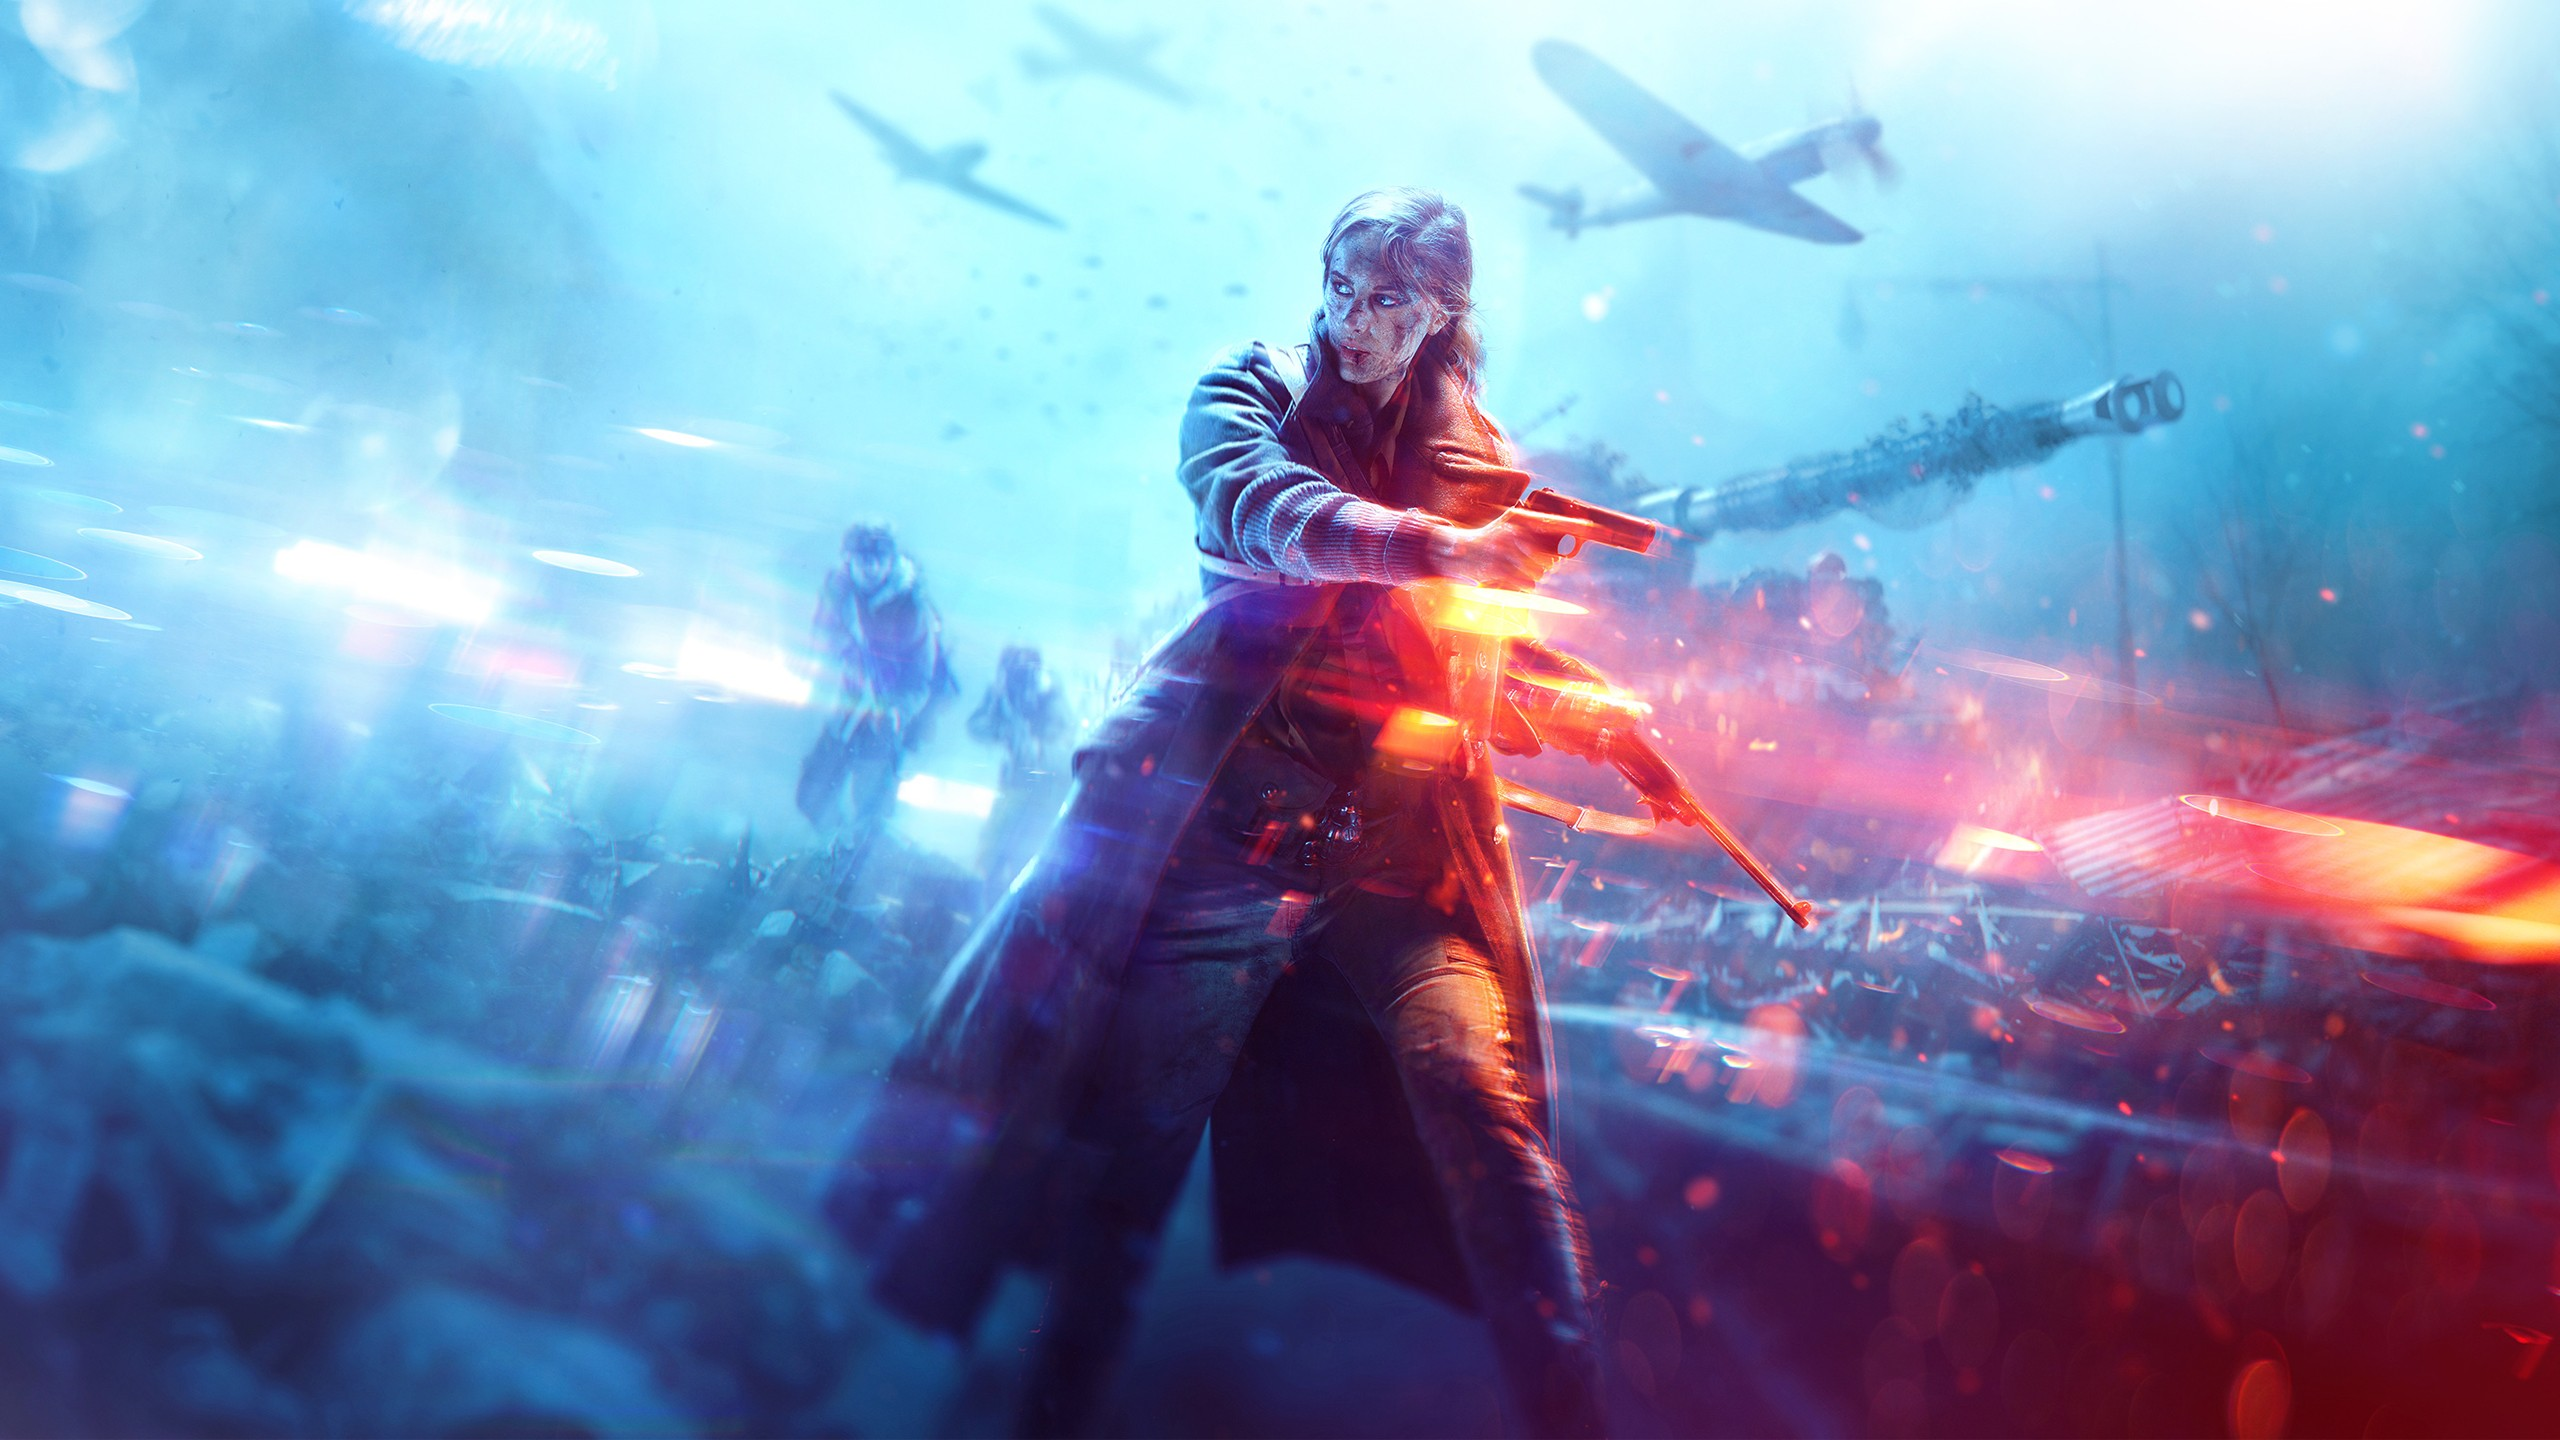 Ultra Hd Wallpapers Cars Battlefield 5 Battlefield V Wallpapers Hd Wallpapers